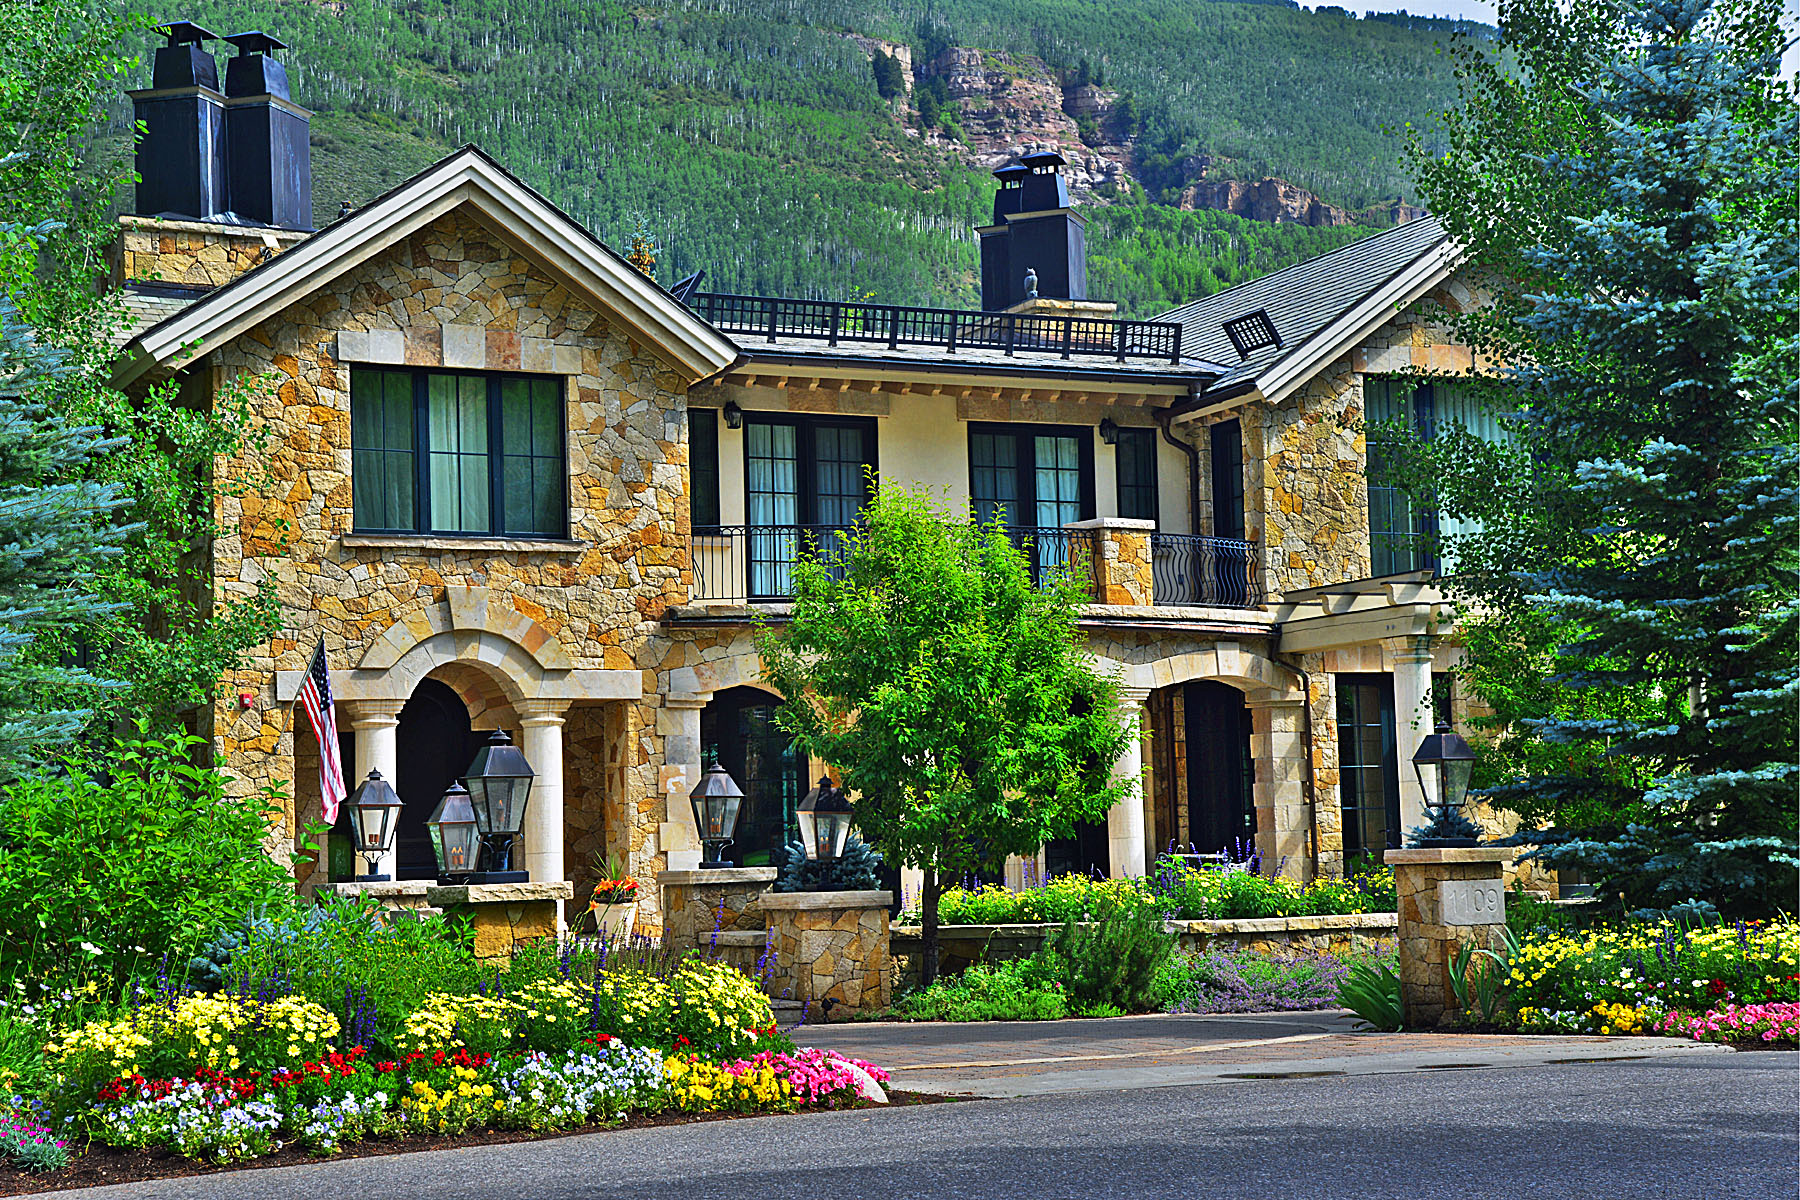 Single Family Home for Active at Stately Elegance in Vail Village 1109 Vail Valley Dr. Vail, Colorado 81657 United States